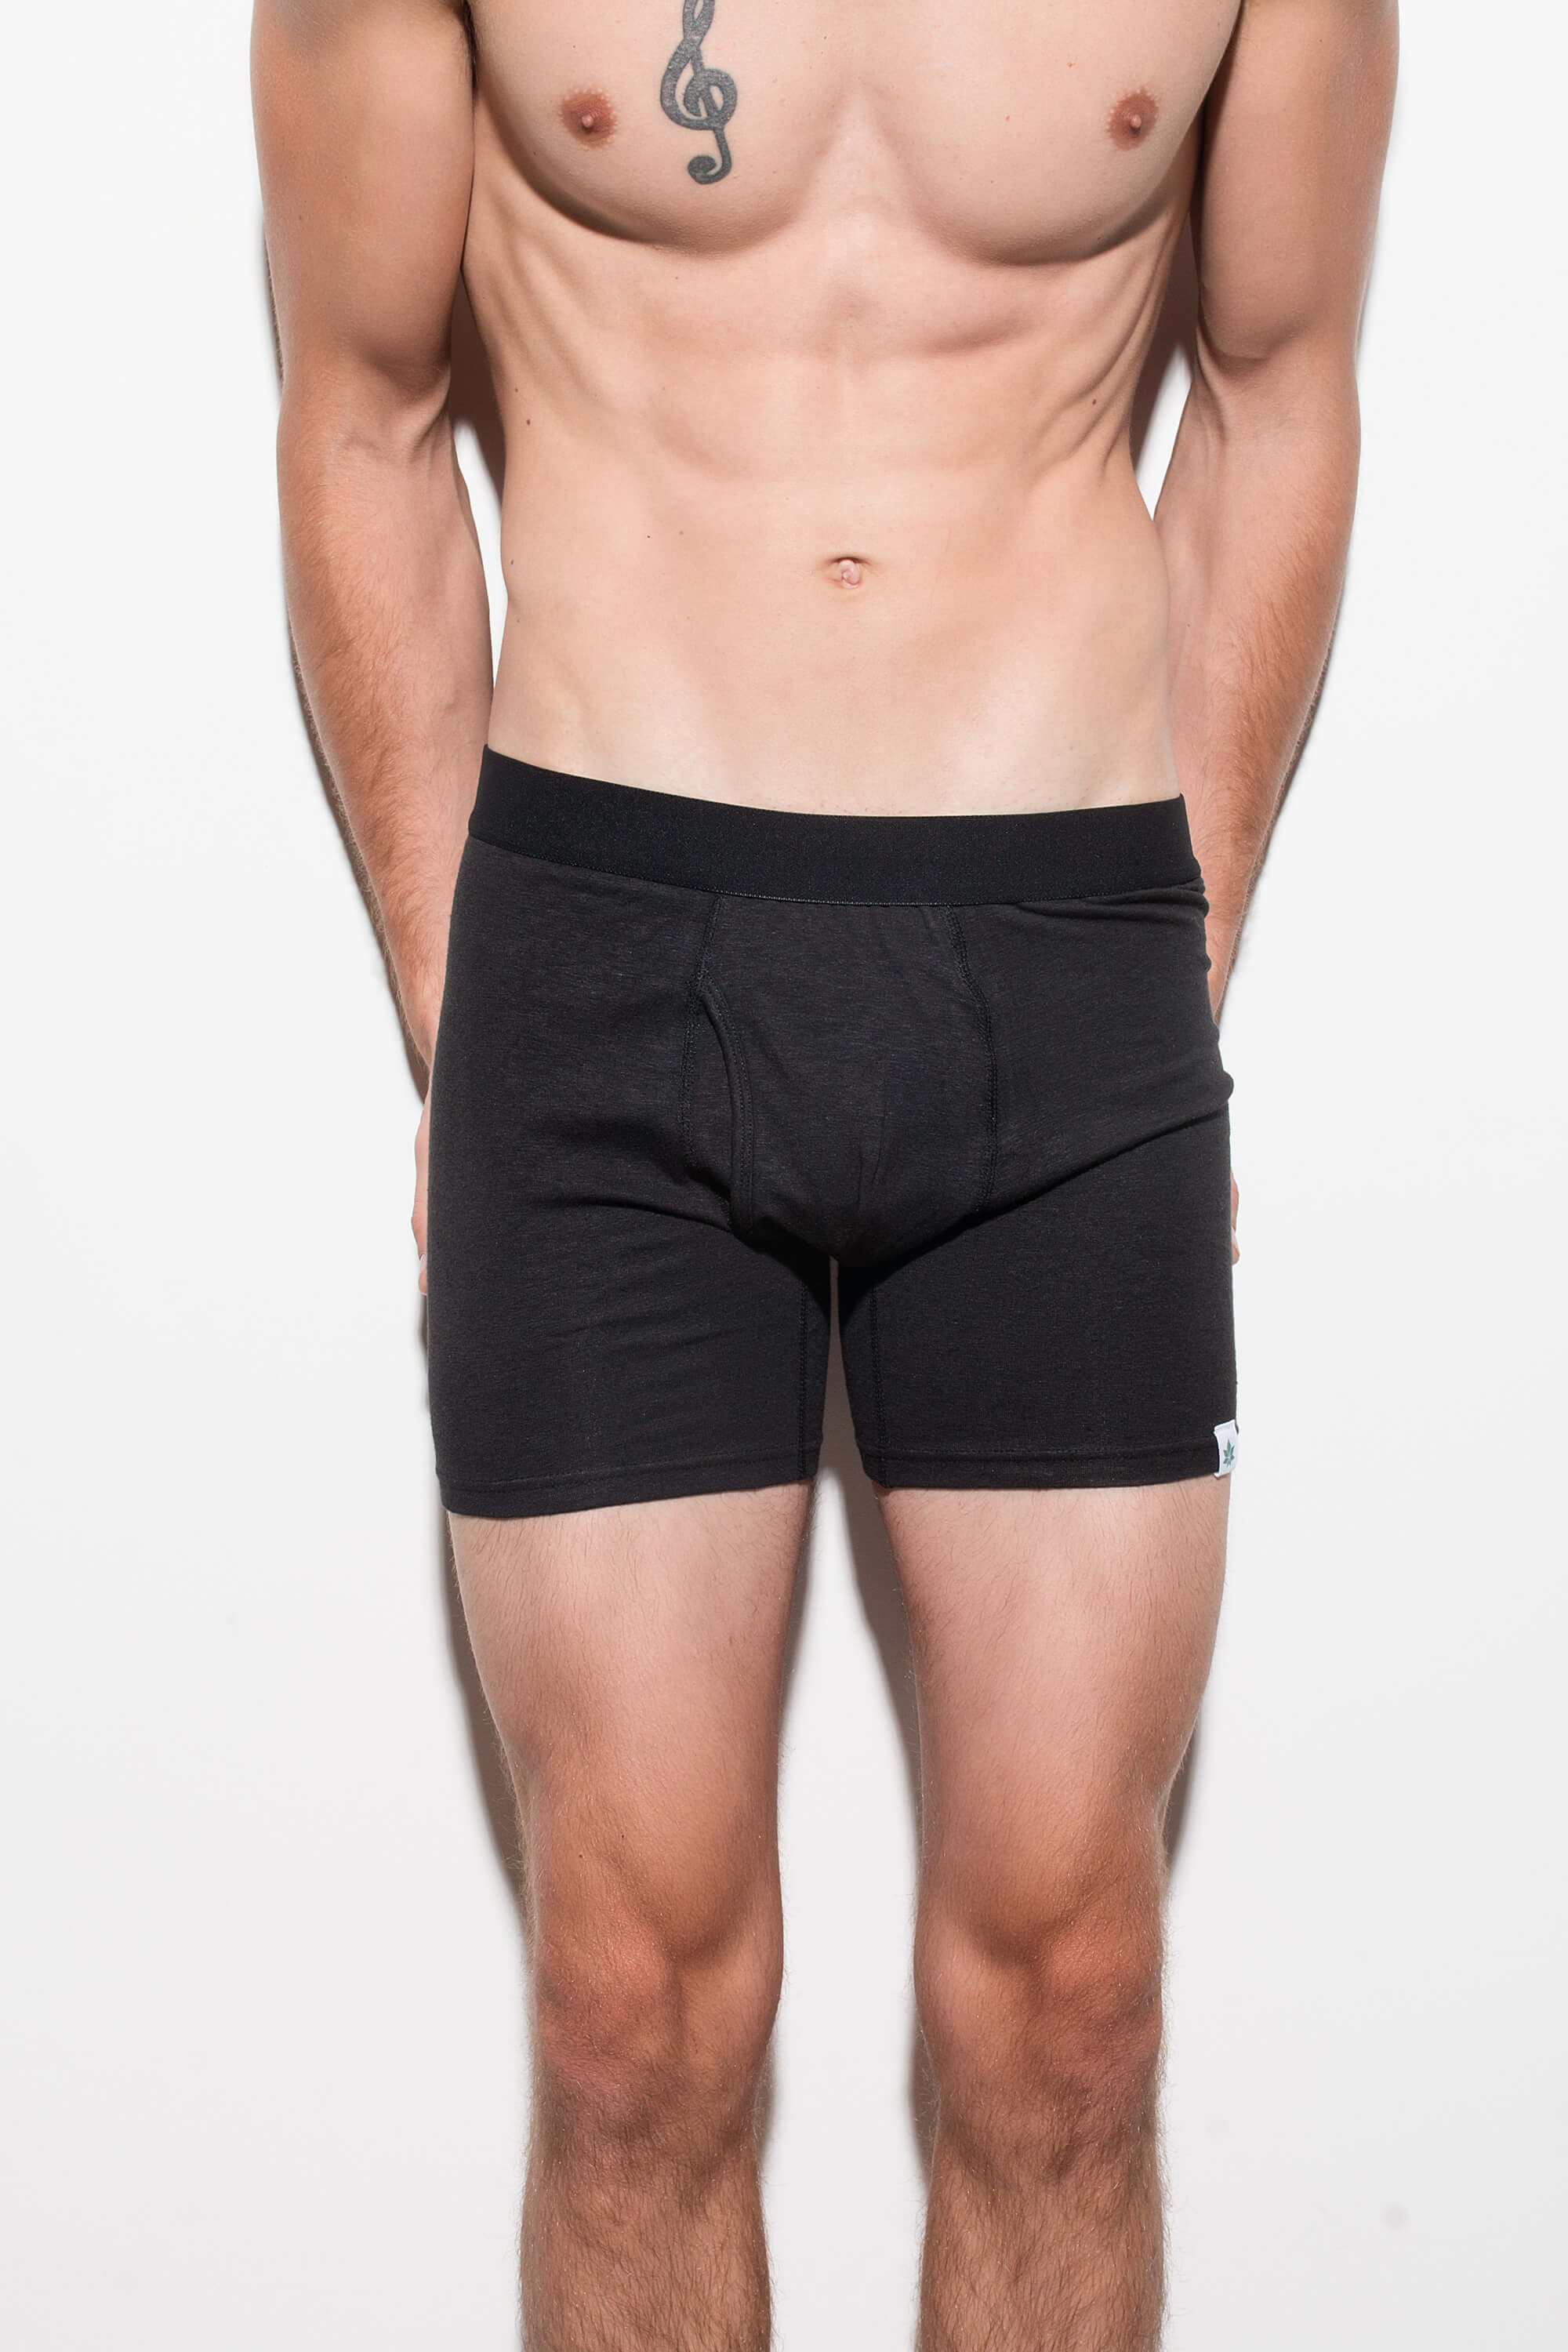 Mens Boxer Briefs x6 pack - WAMA Underwear